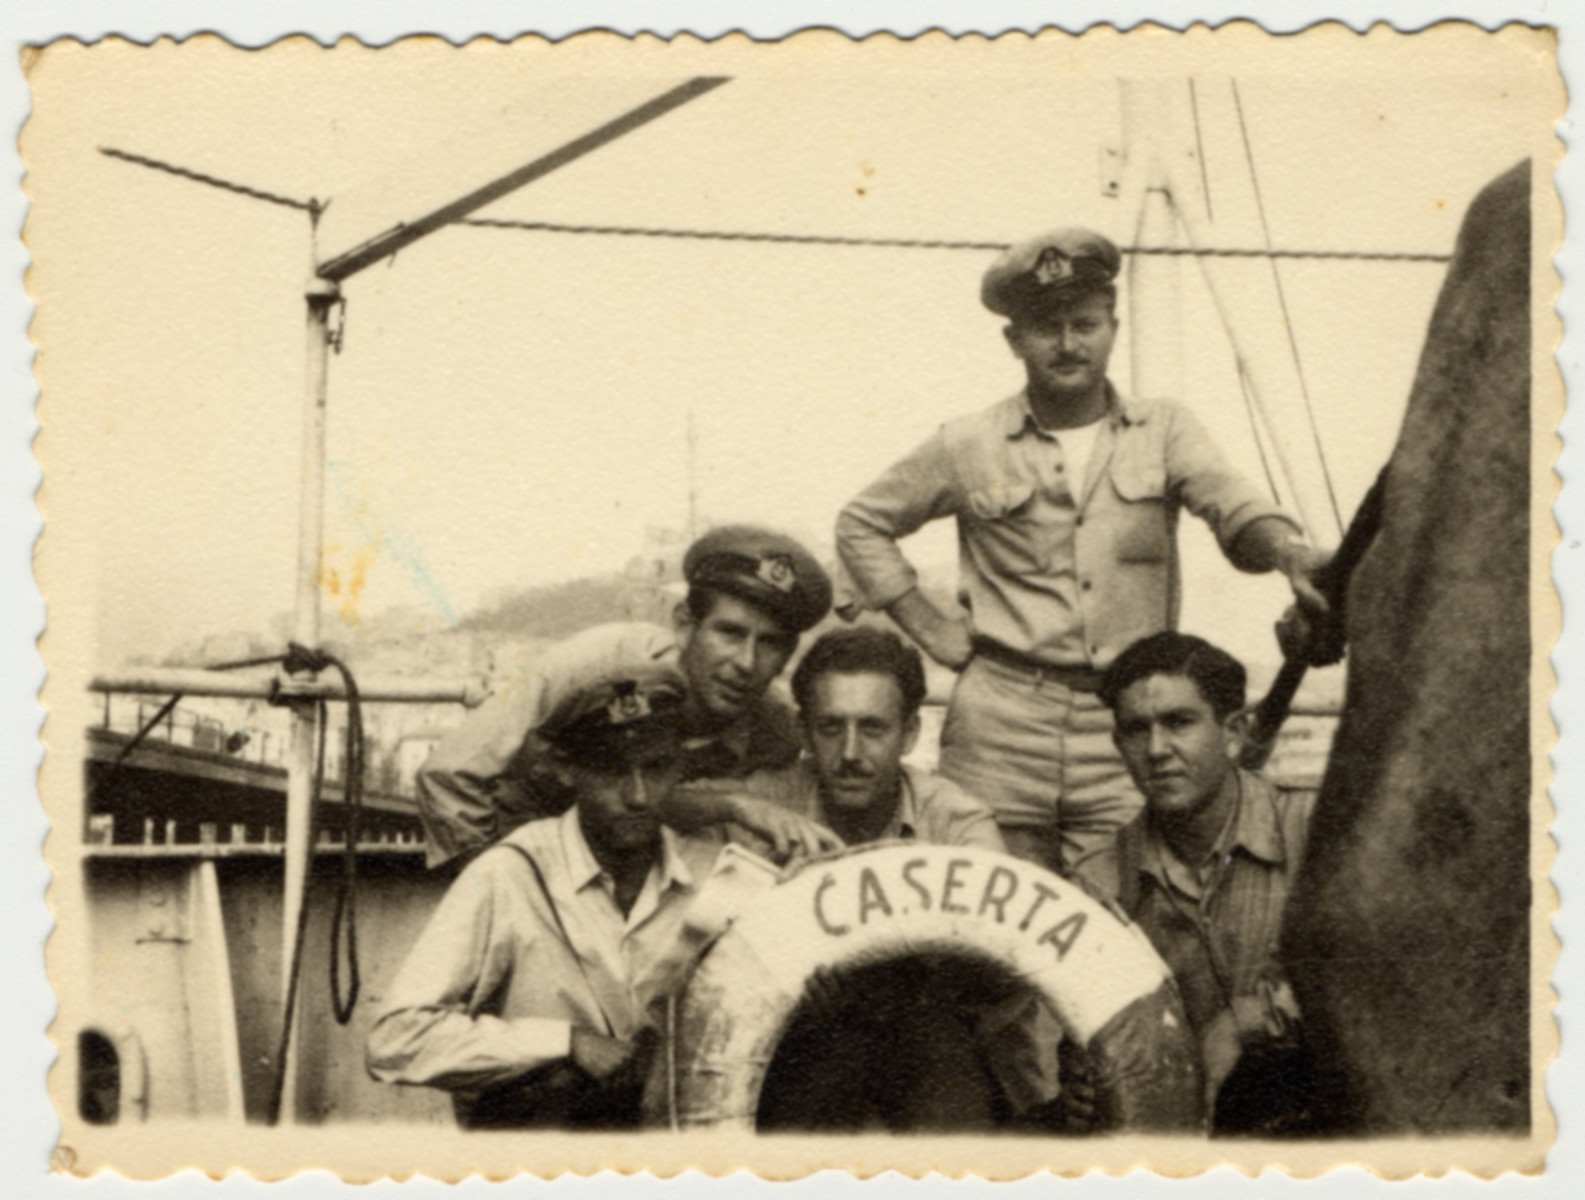 Crew members pose next to the life preserver of the Caserta.  Among those pictured are Avraham Heeres (second from left) and Teddy Rosenfeld (Vardi) center.  Teddy Vardi had helped liberate Nordhausen as a soldier in the U.S. Army before joining the crew of the Exodus and later the Pan Crescent.